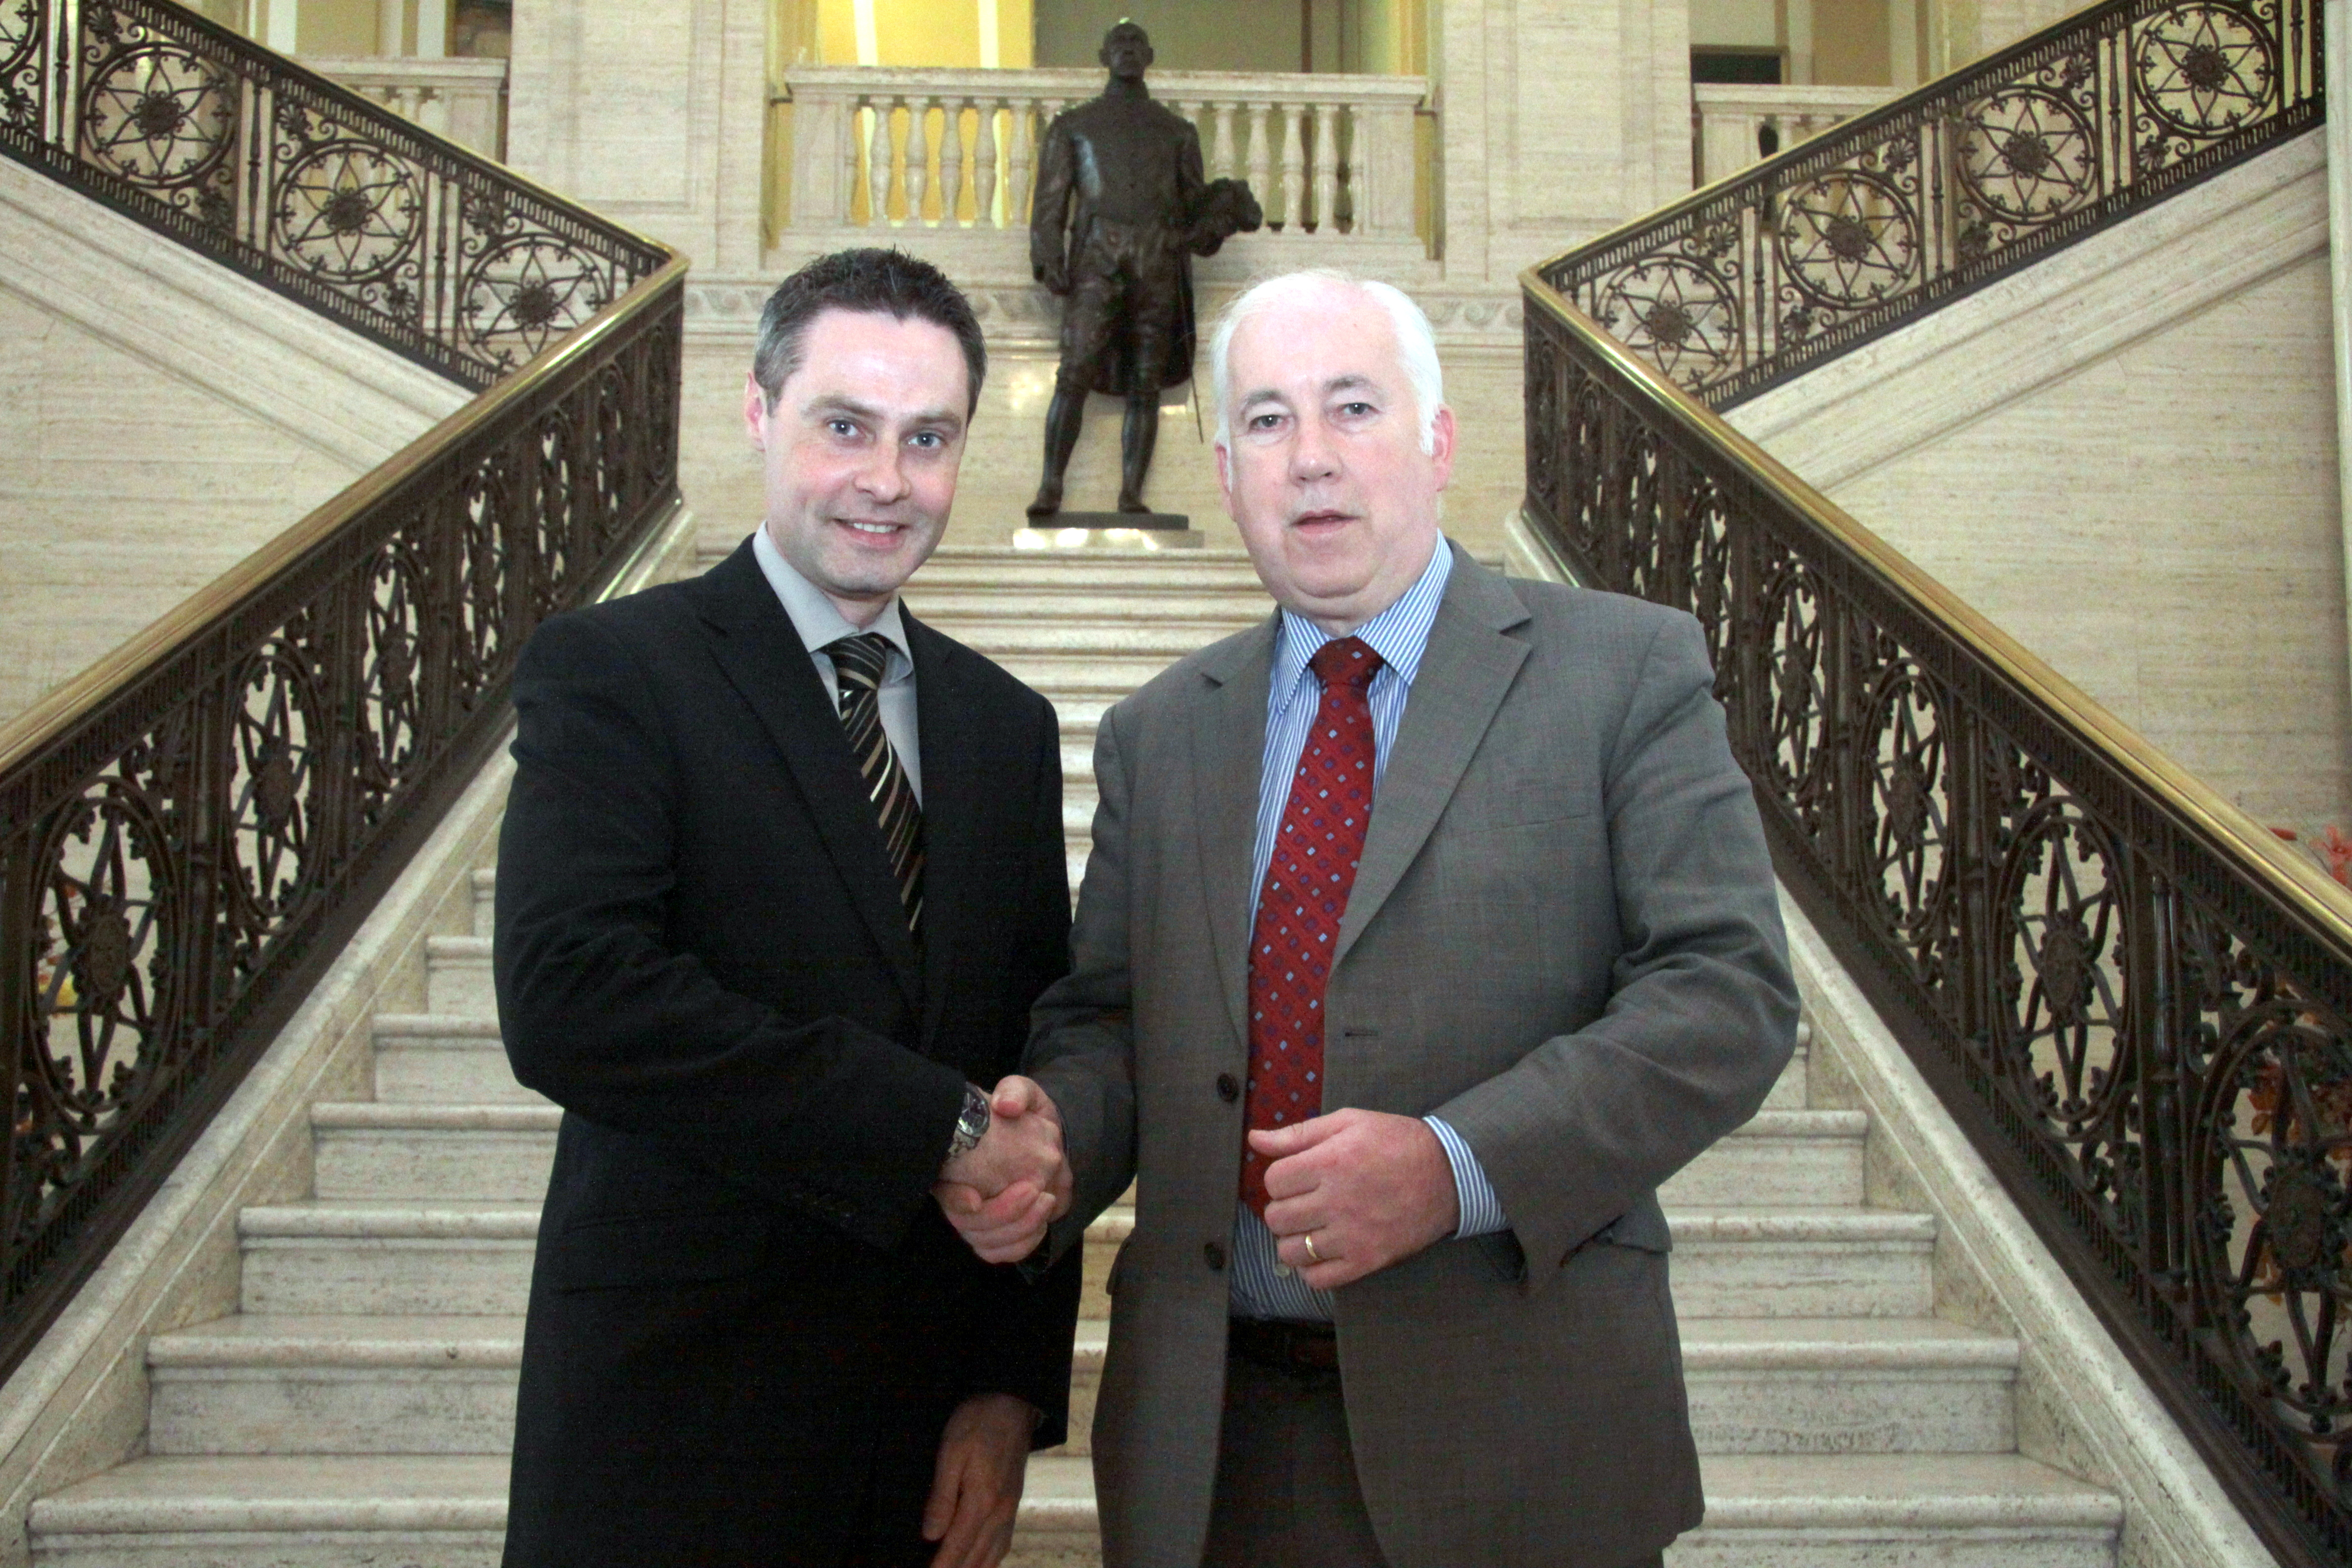 Paul Frew MLA (Chair of the Assembly Agriculture and Rural Development Committee) welcomes new Deputy Chairperson, Joe Byrne MLA to the Committee. Mr Byrne replaced Mrs Dolores Kelly as Committee Deputy Chairperson on 19 May 2012.